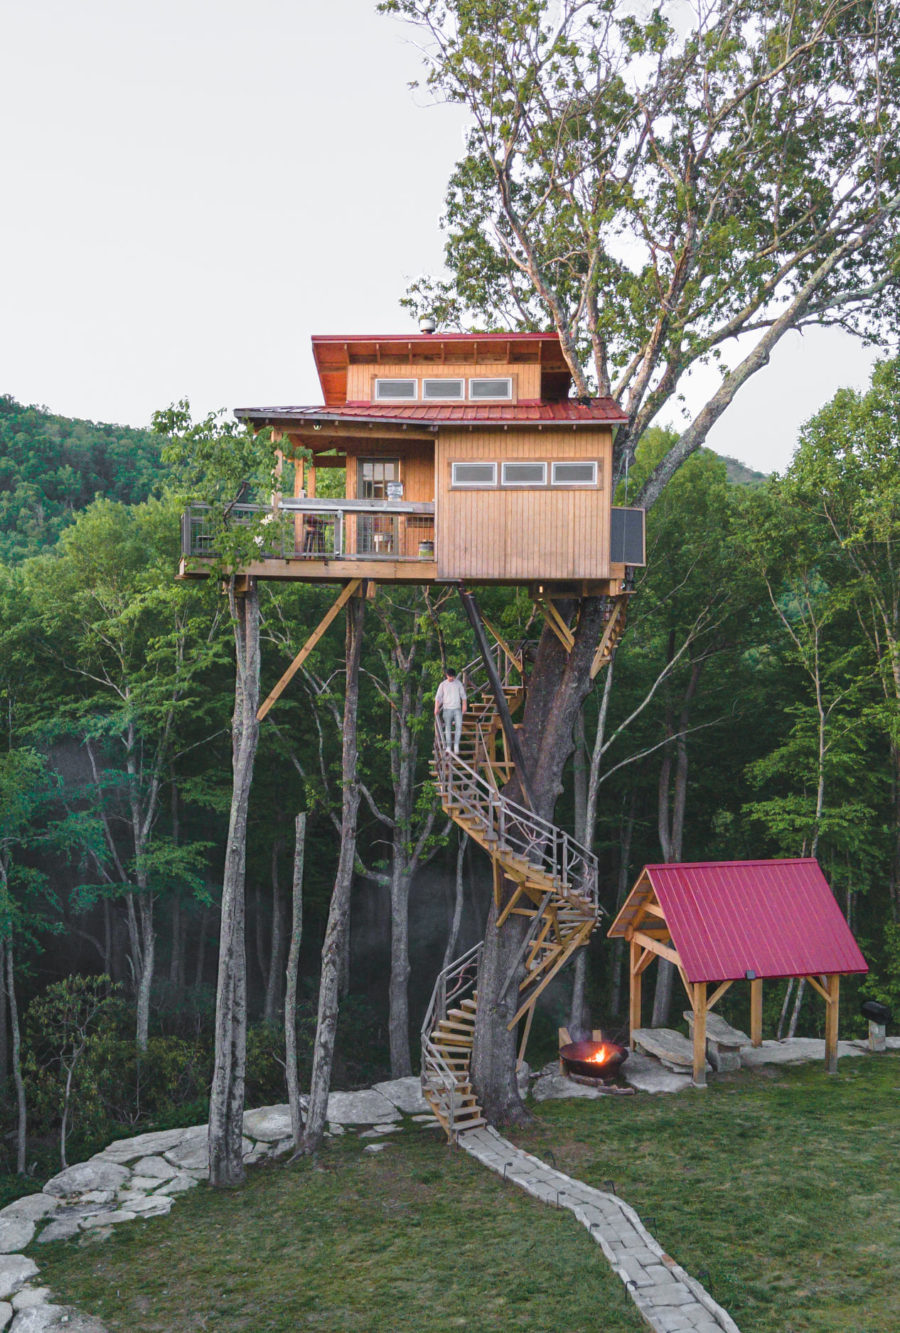 You Have to Climb 62 Steps to Get Into this Off-Grid Treehouse 8